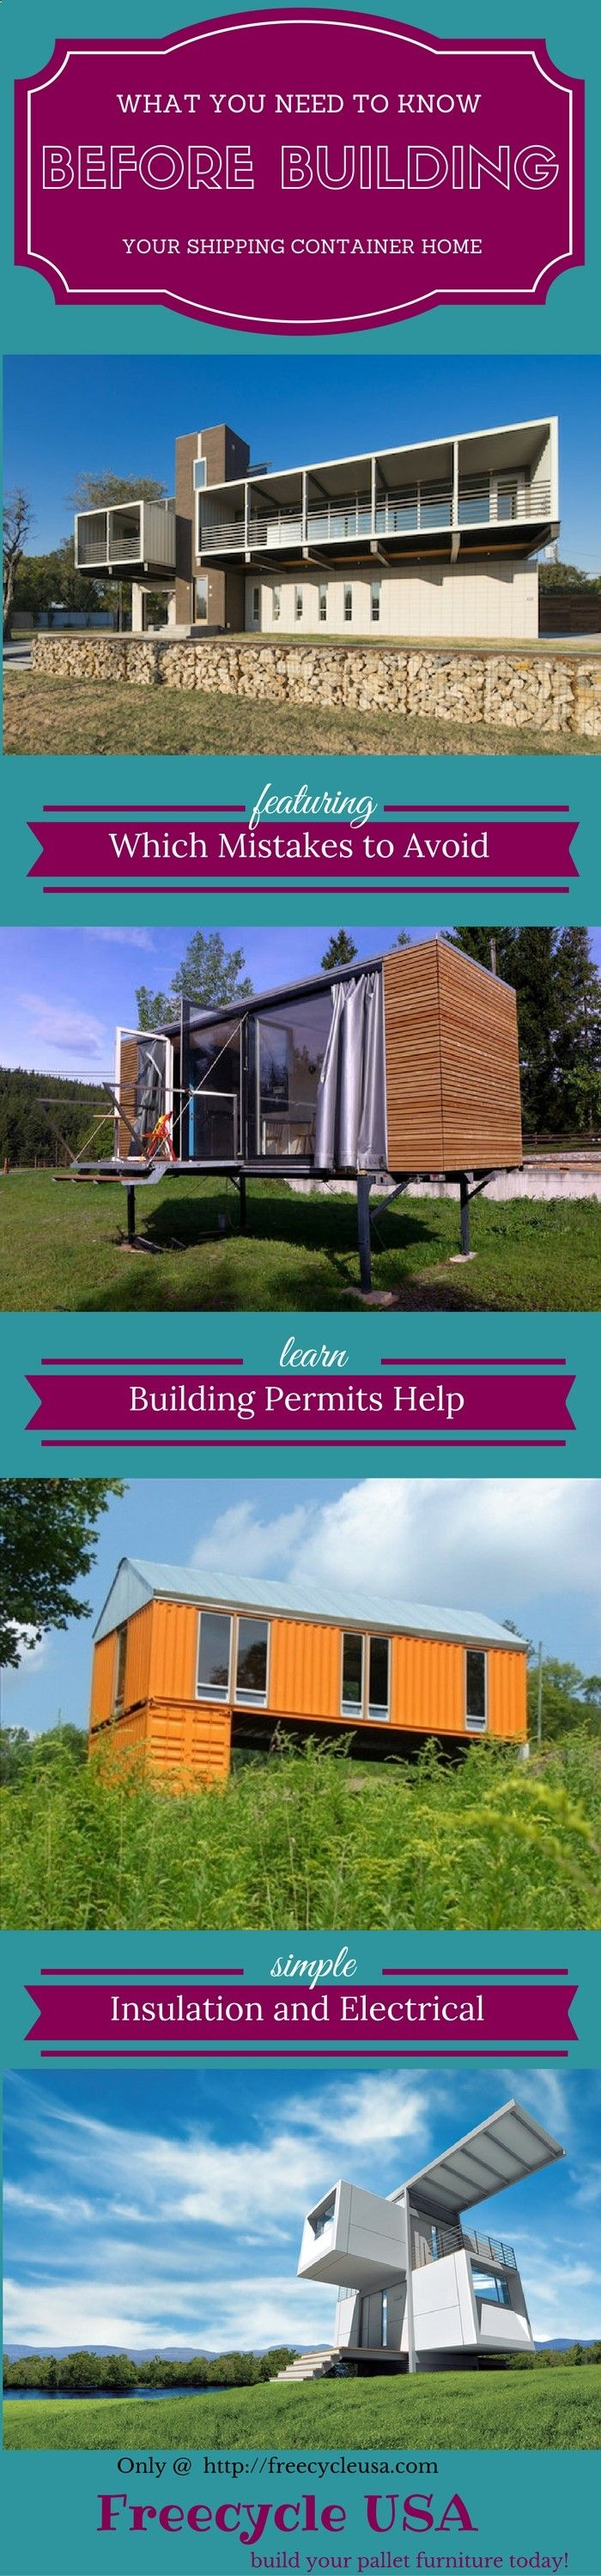 Beautiful How To Build Your Own Shipping Container Home When it es to building your own shipping